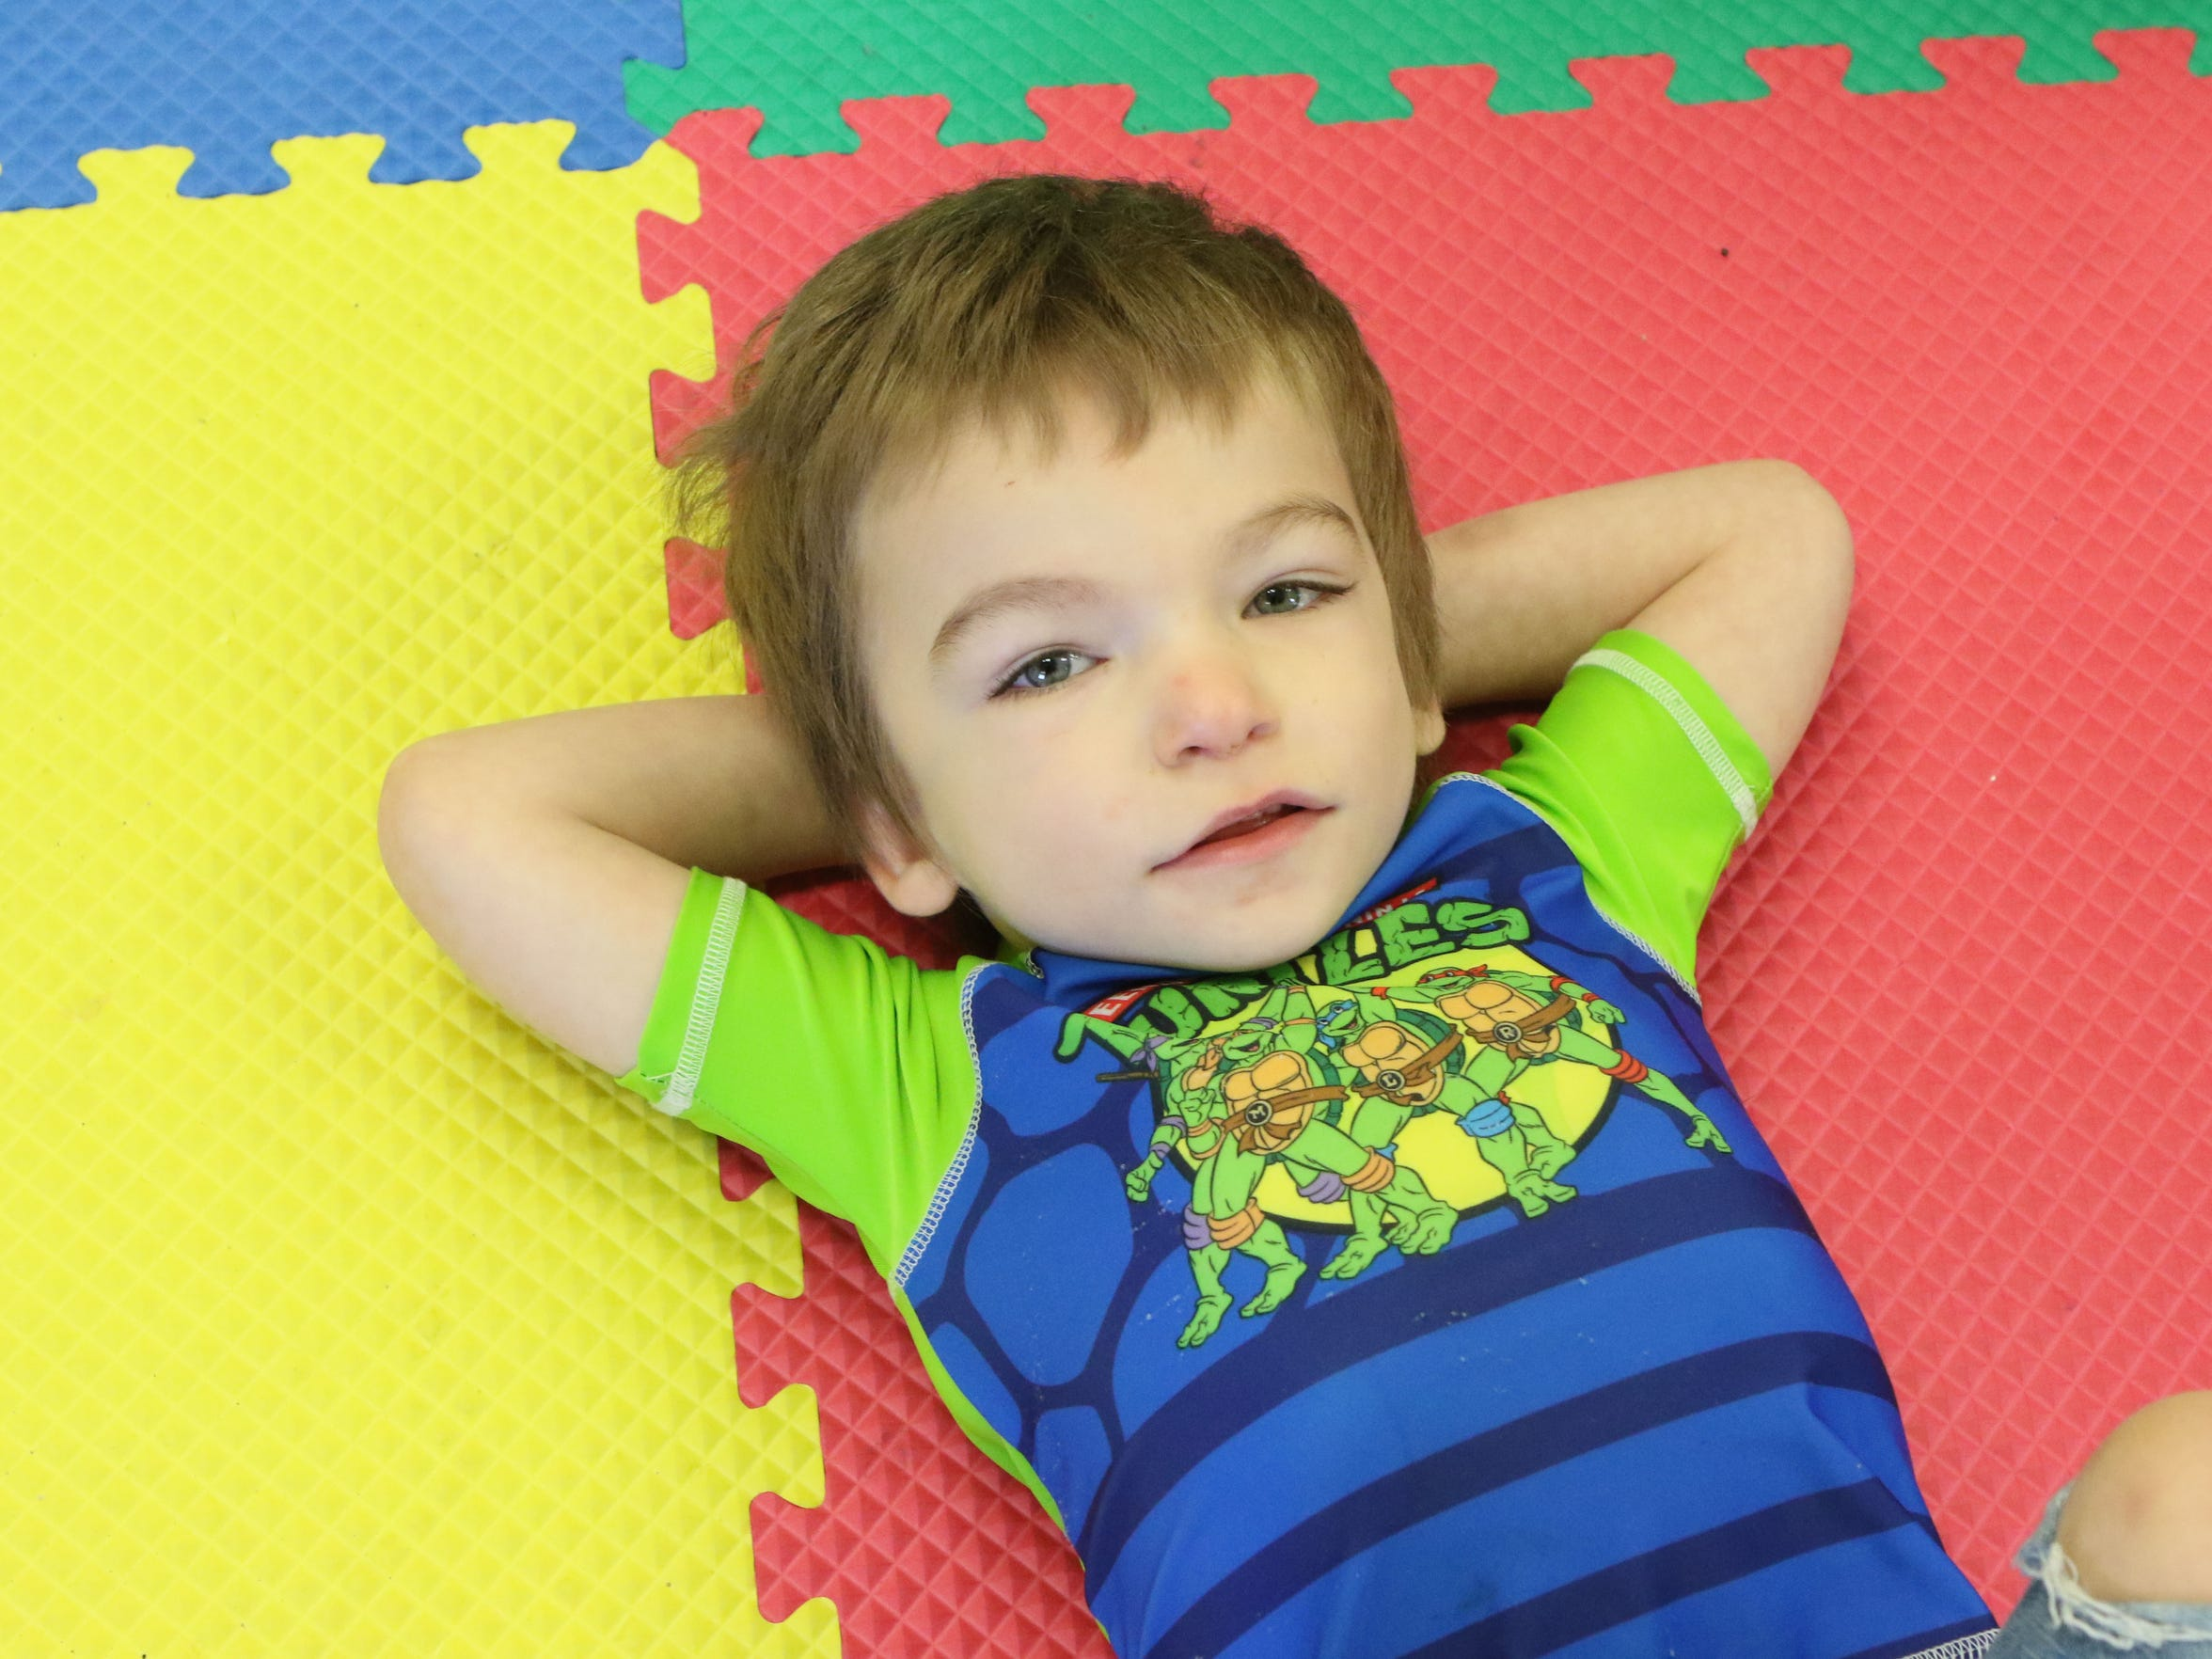 Collin Forest, 4, lies on the ground during playtime